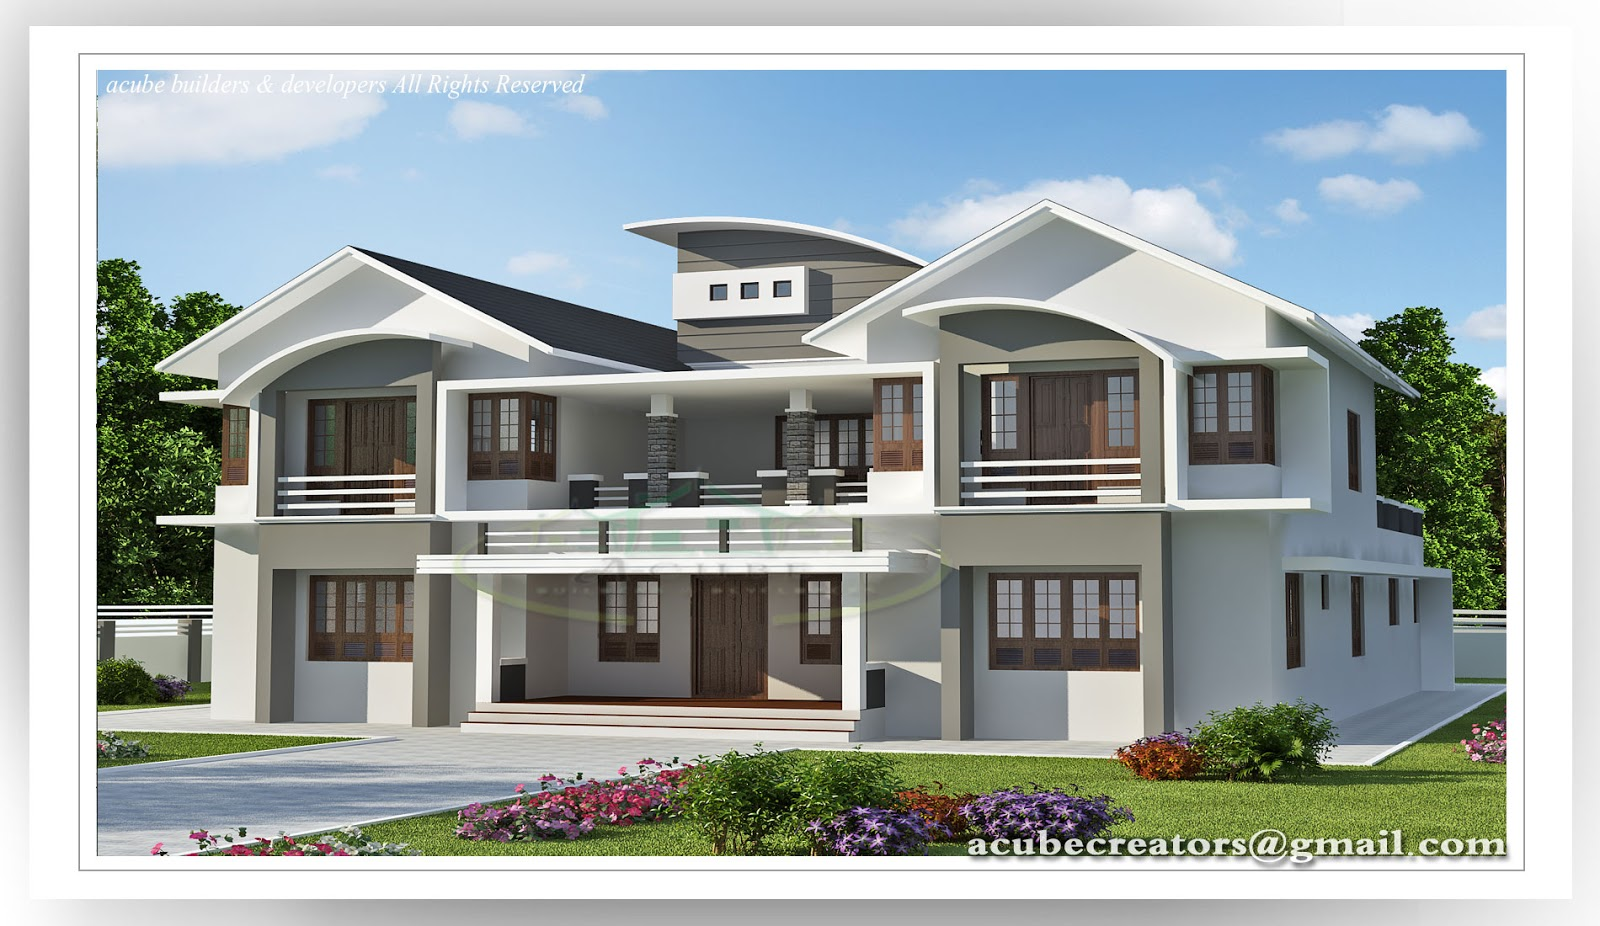 6 bedroom luxury villa design 5091 plan 149 for Home designs 6 bedrooms